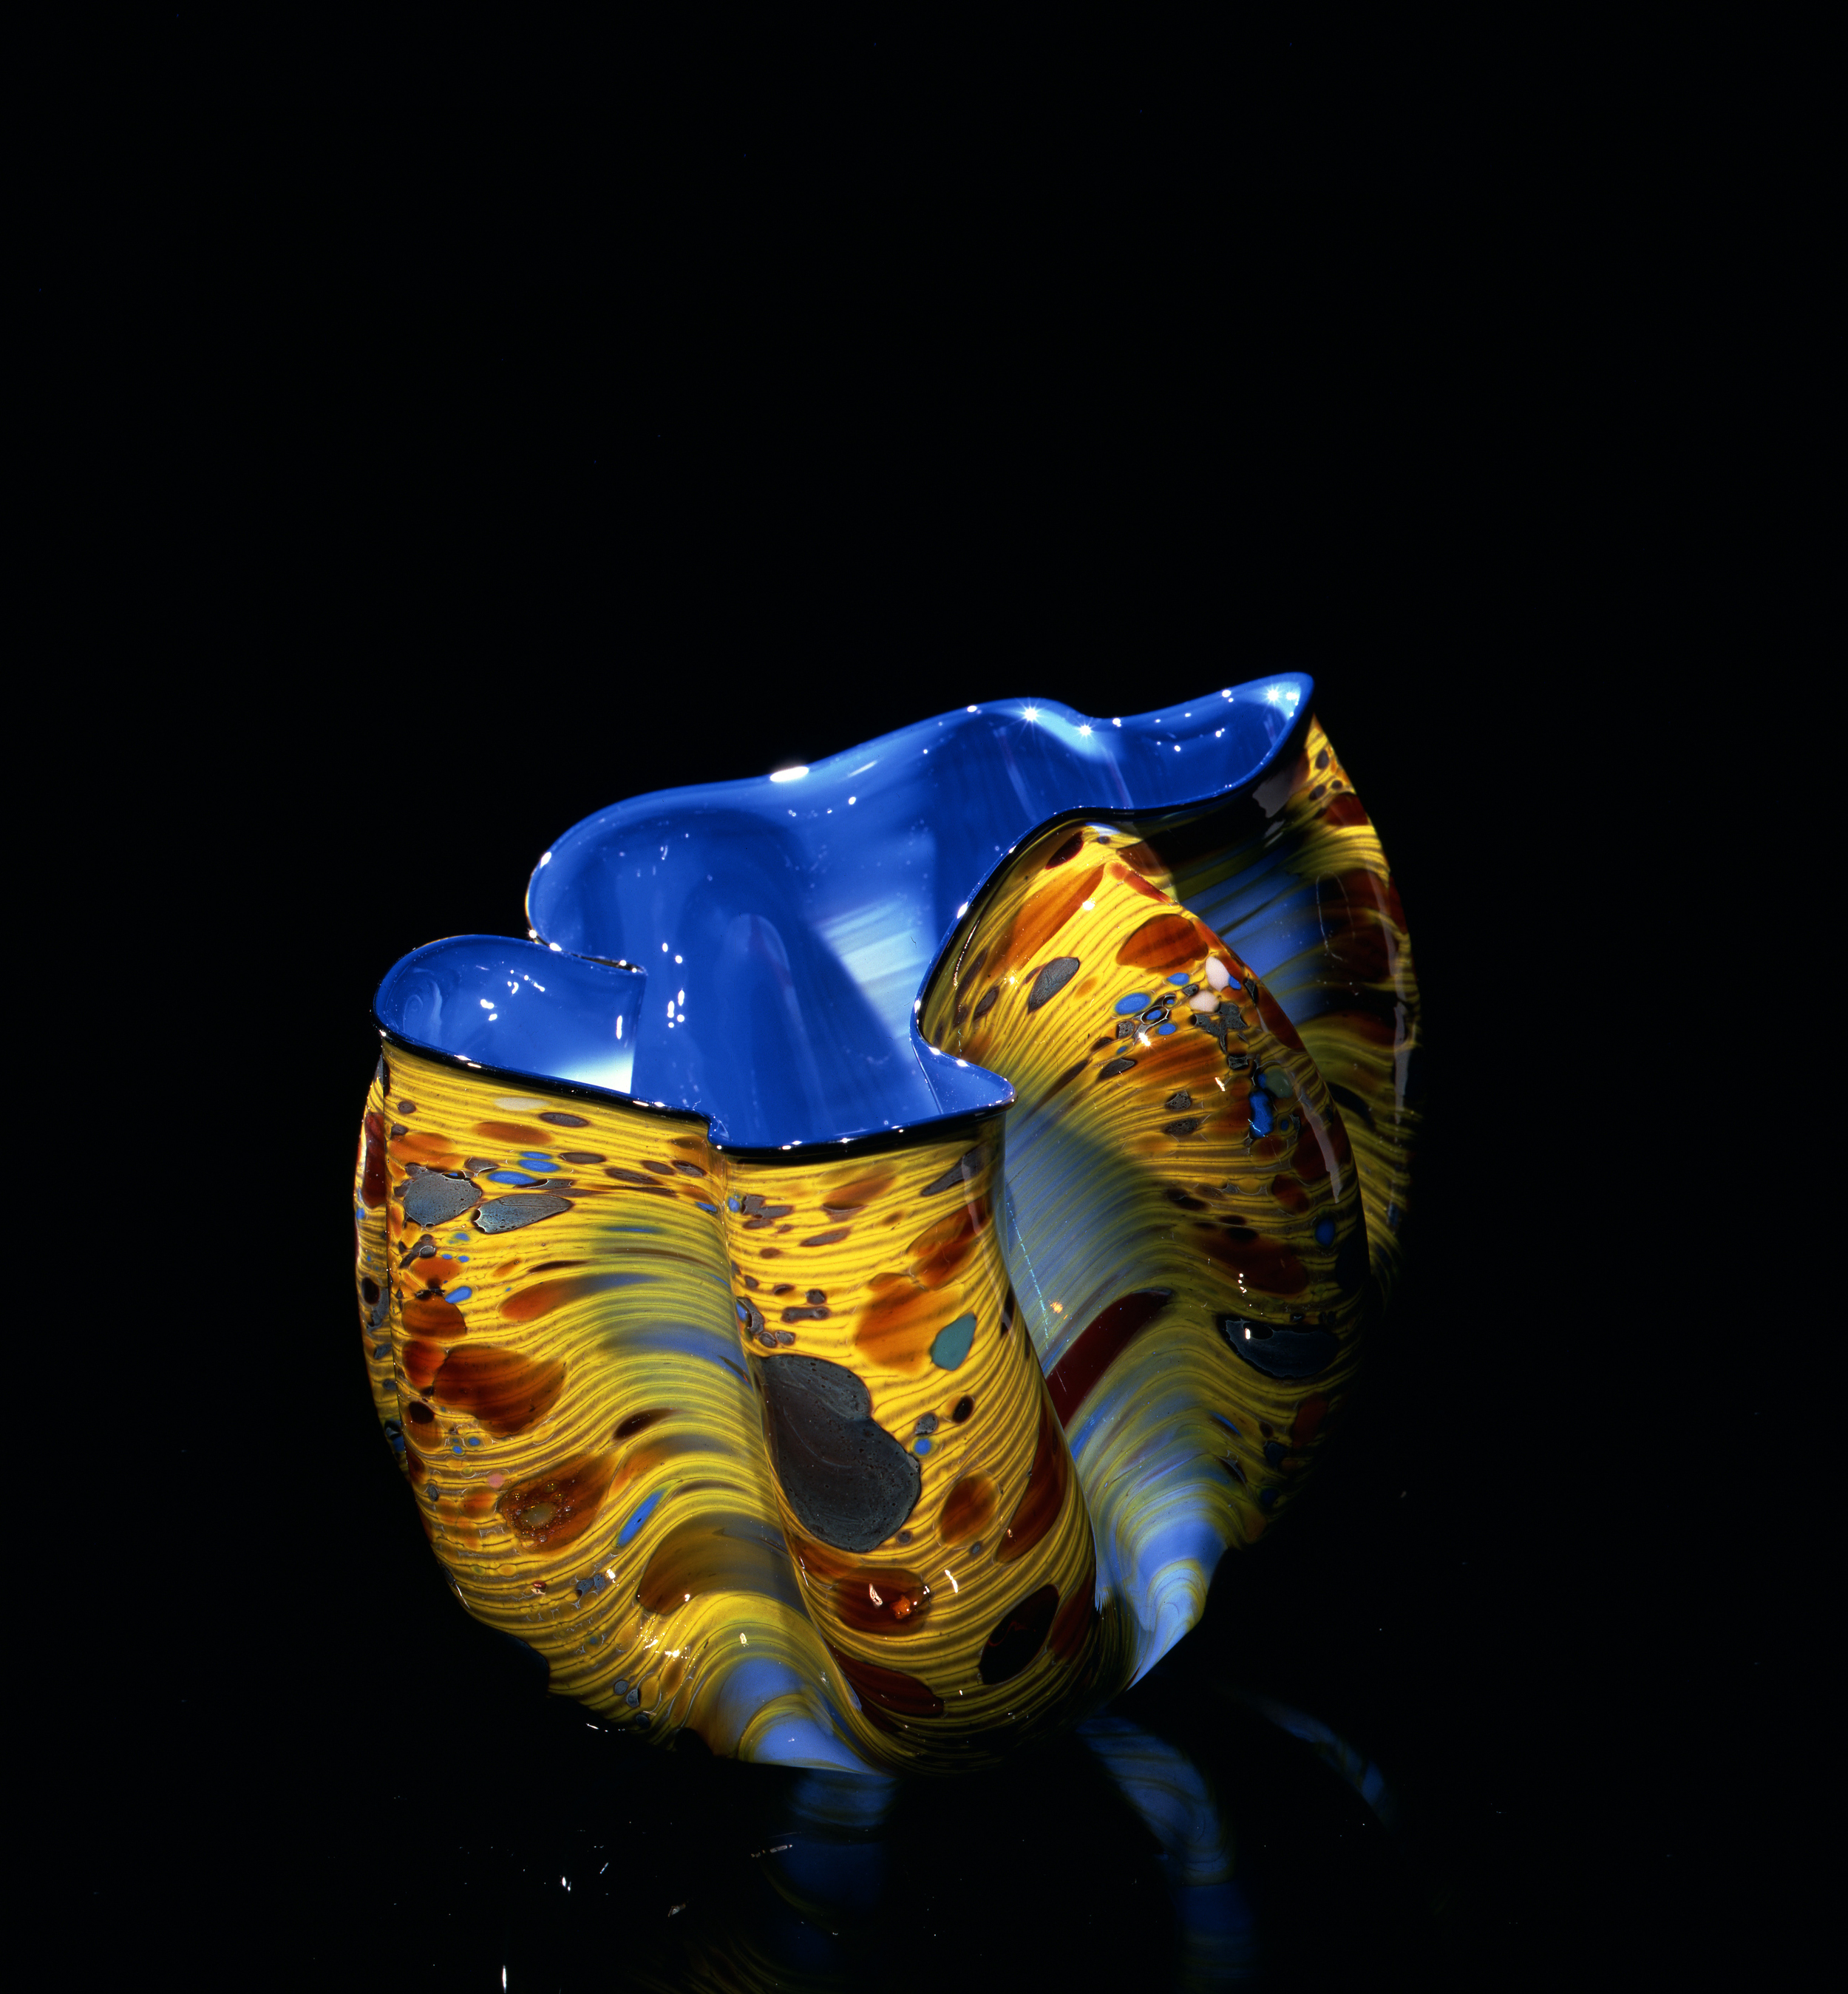 Dale Chihuly, Commelian Blue Macchia with Ochre Jimmies (1982, glass, 6 x 10 x 9inches), DC.118